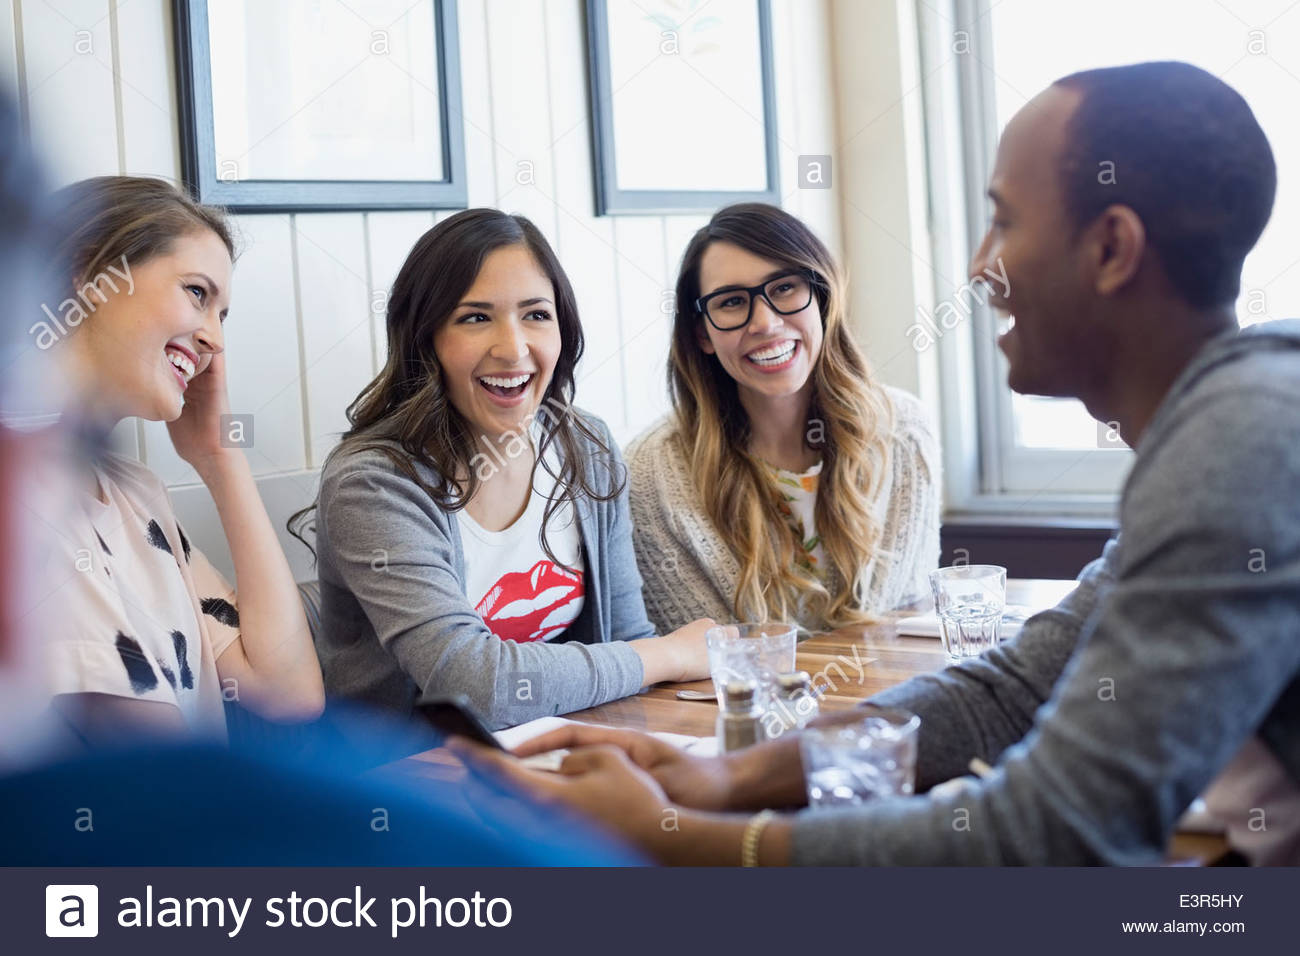 Friends talking at bistro - Stock Image